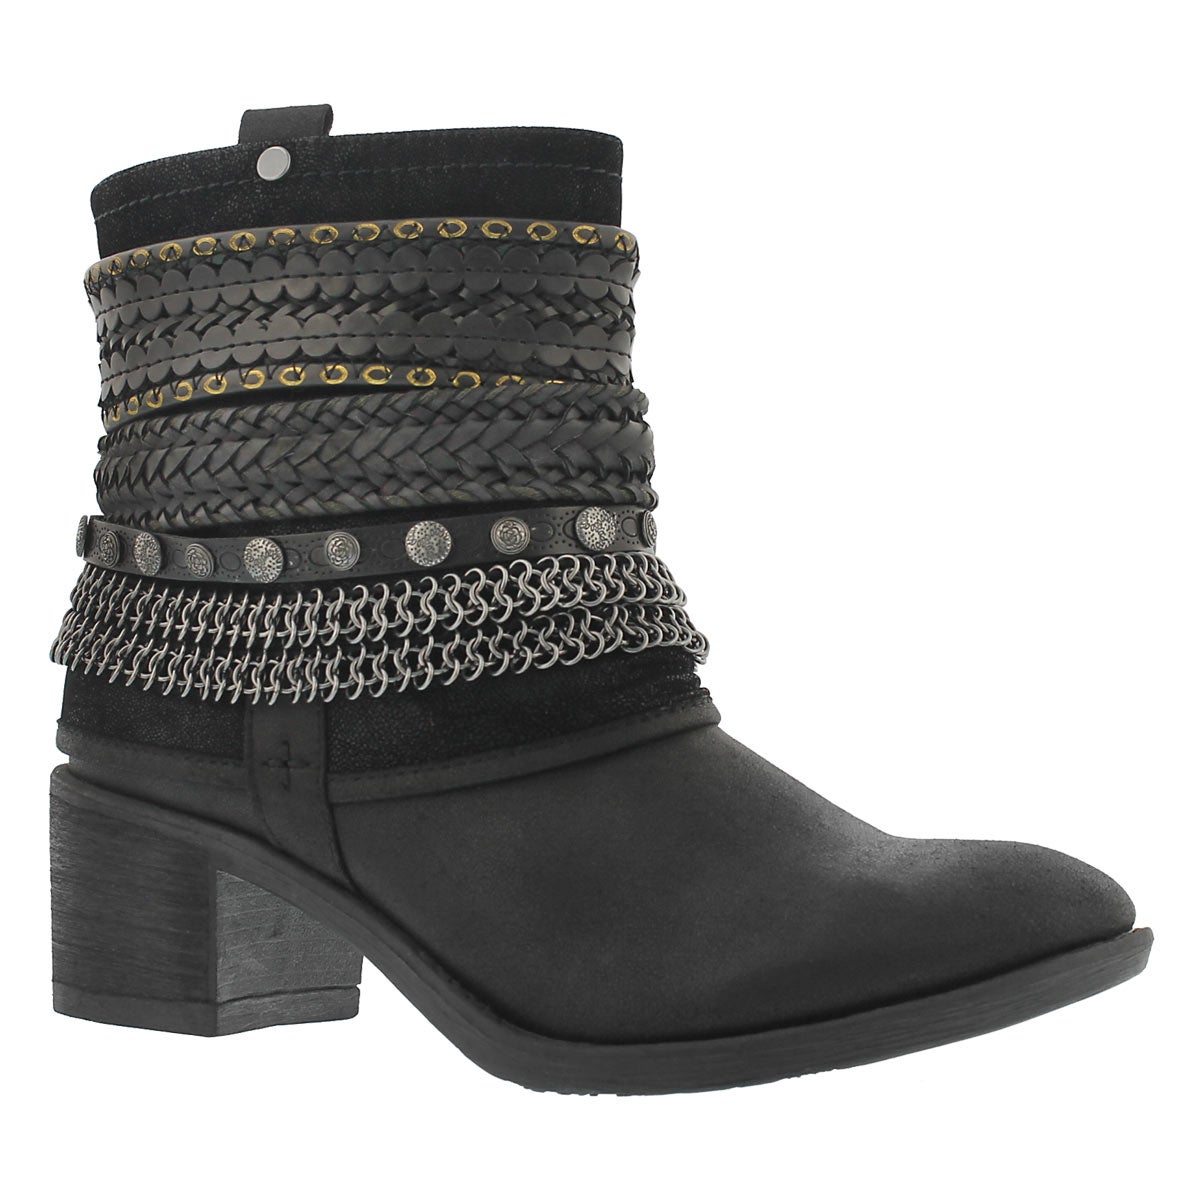 Lds Bizou blk zip up casual ankle boot